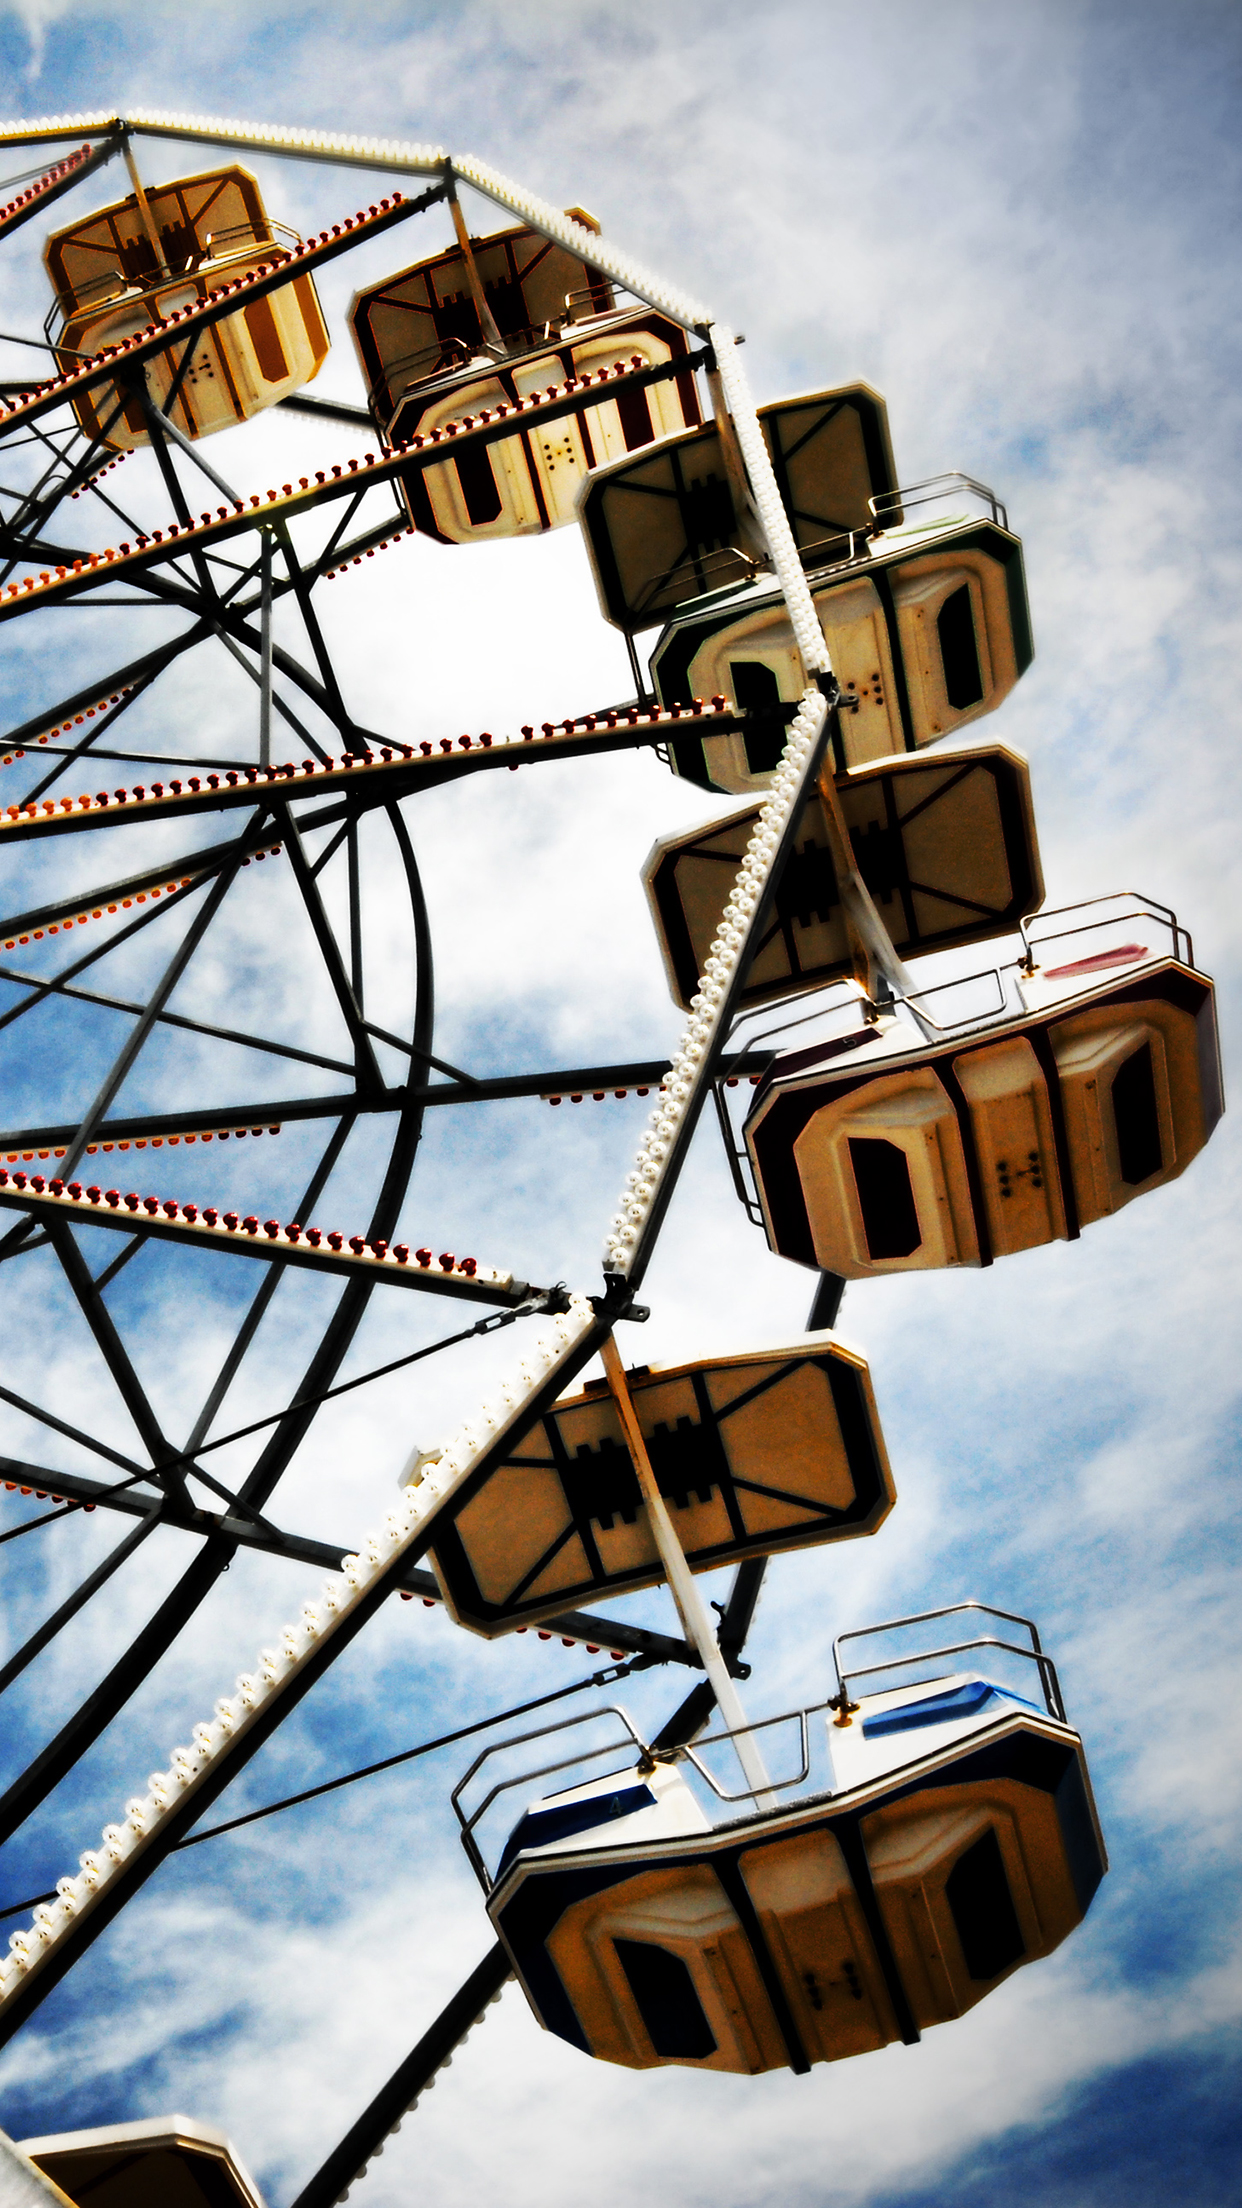 Funfair 3Wallpapers Parallax iPhone Funfair